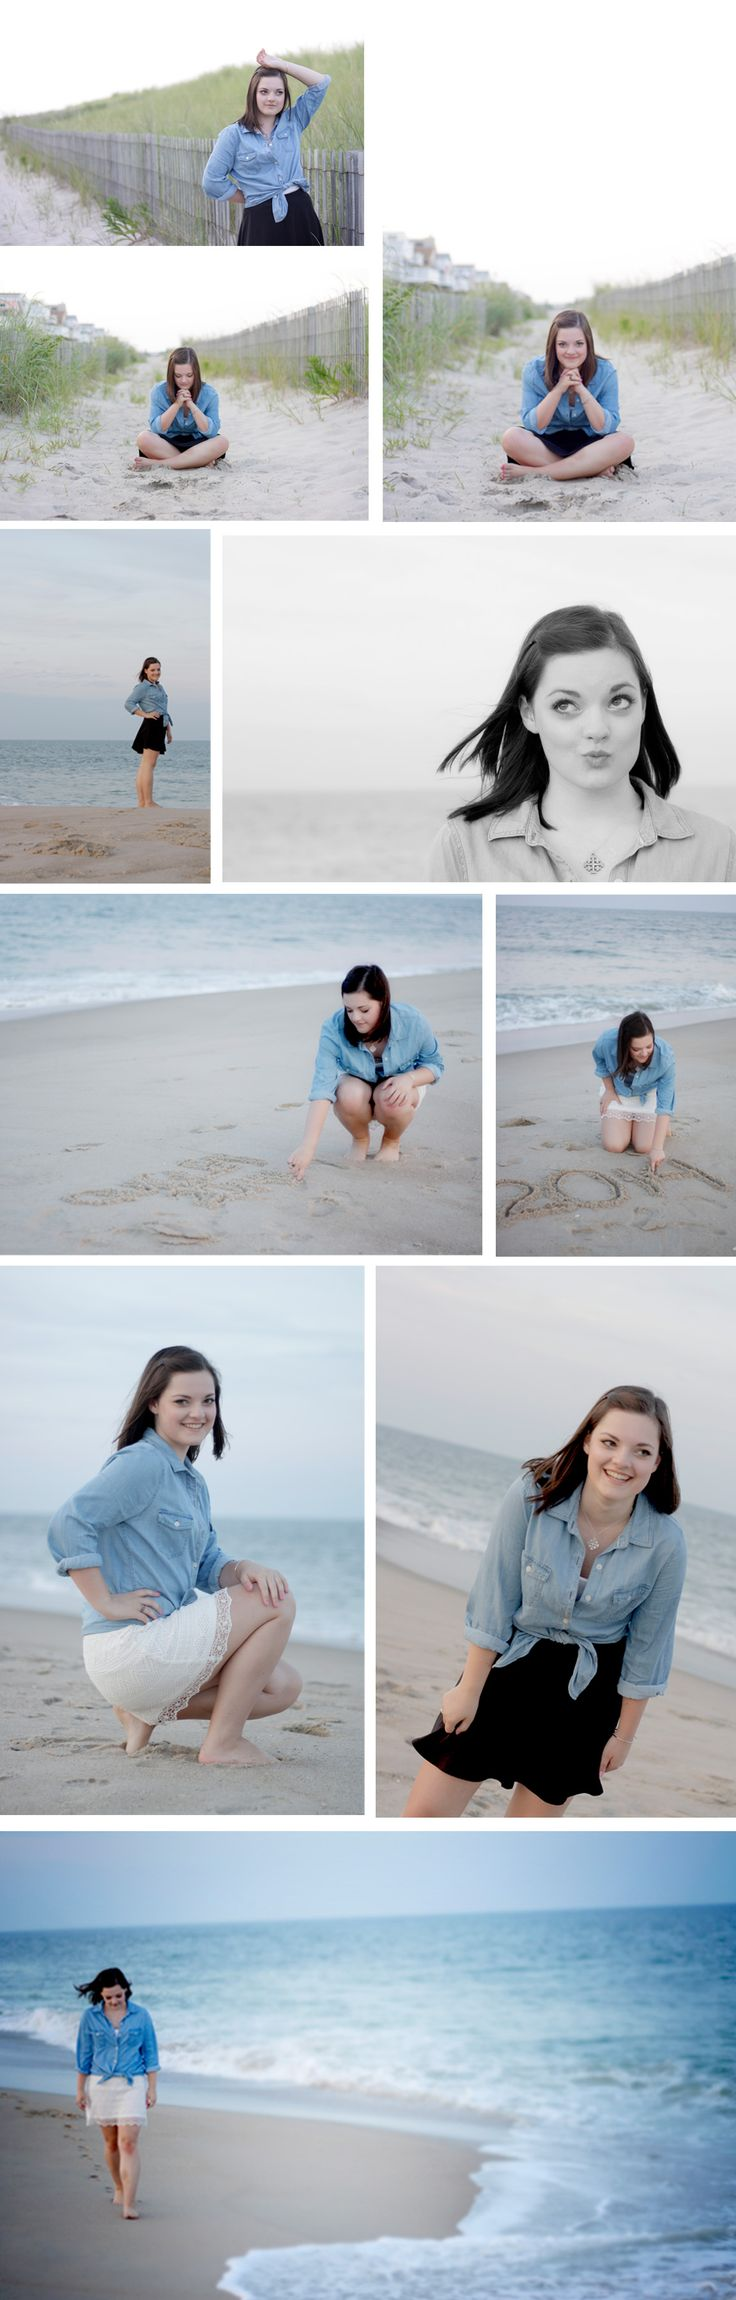 Senior portraits on the beach : great poses for senior girls, perfect simple outfit and beautiful light. These same poses would be perfect in a park or a field too!